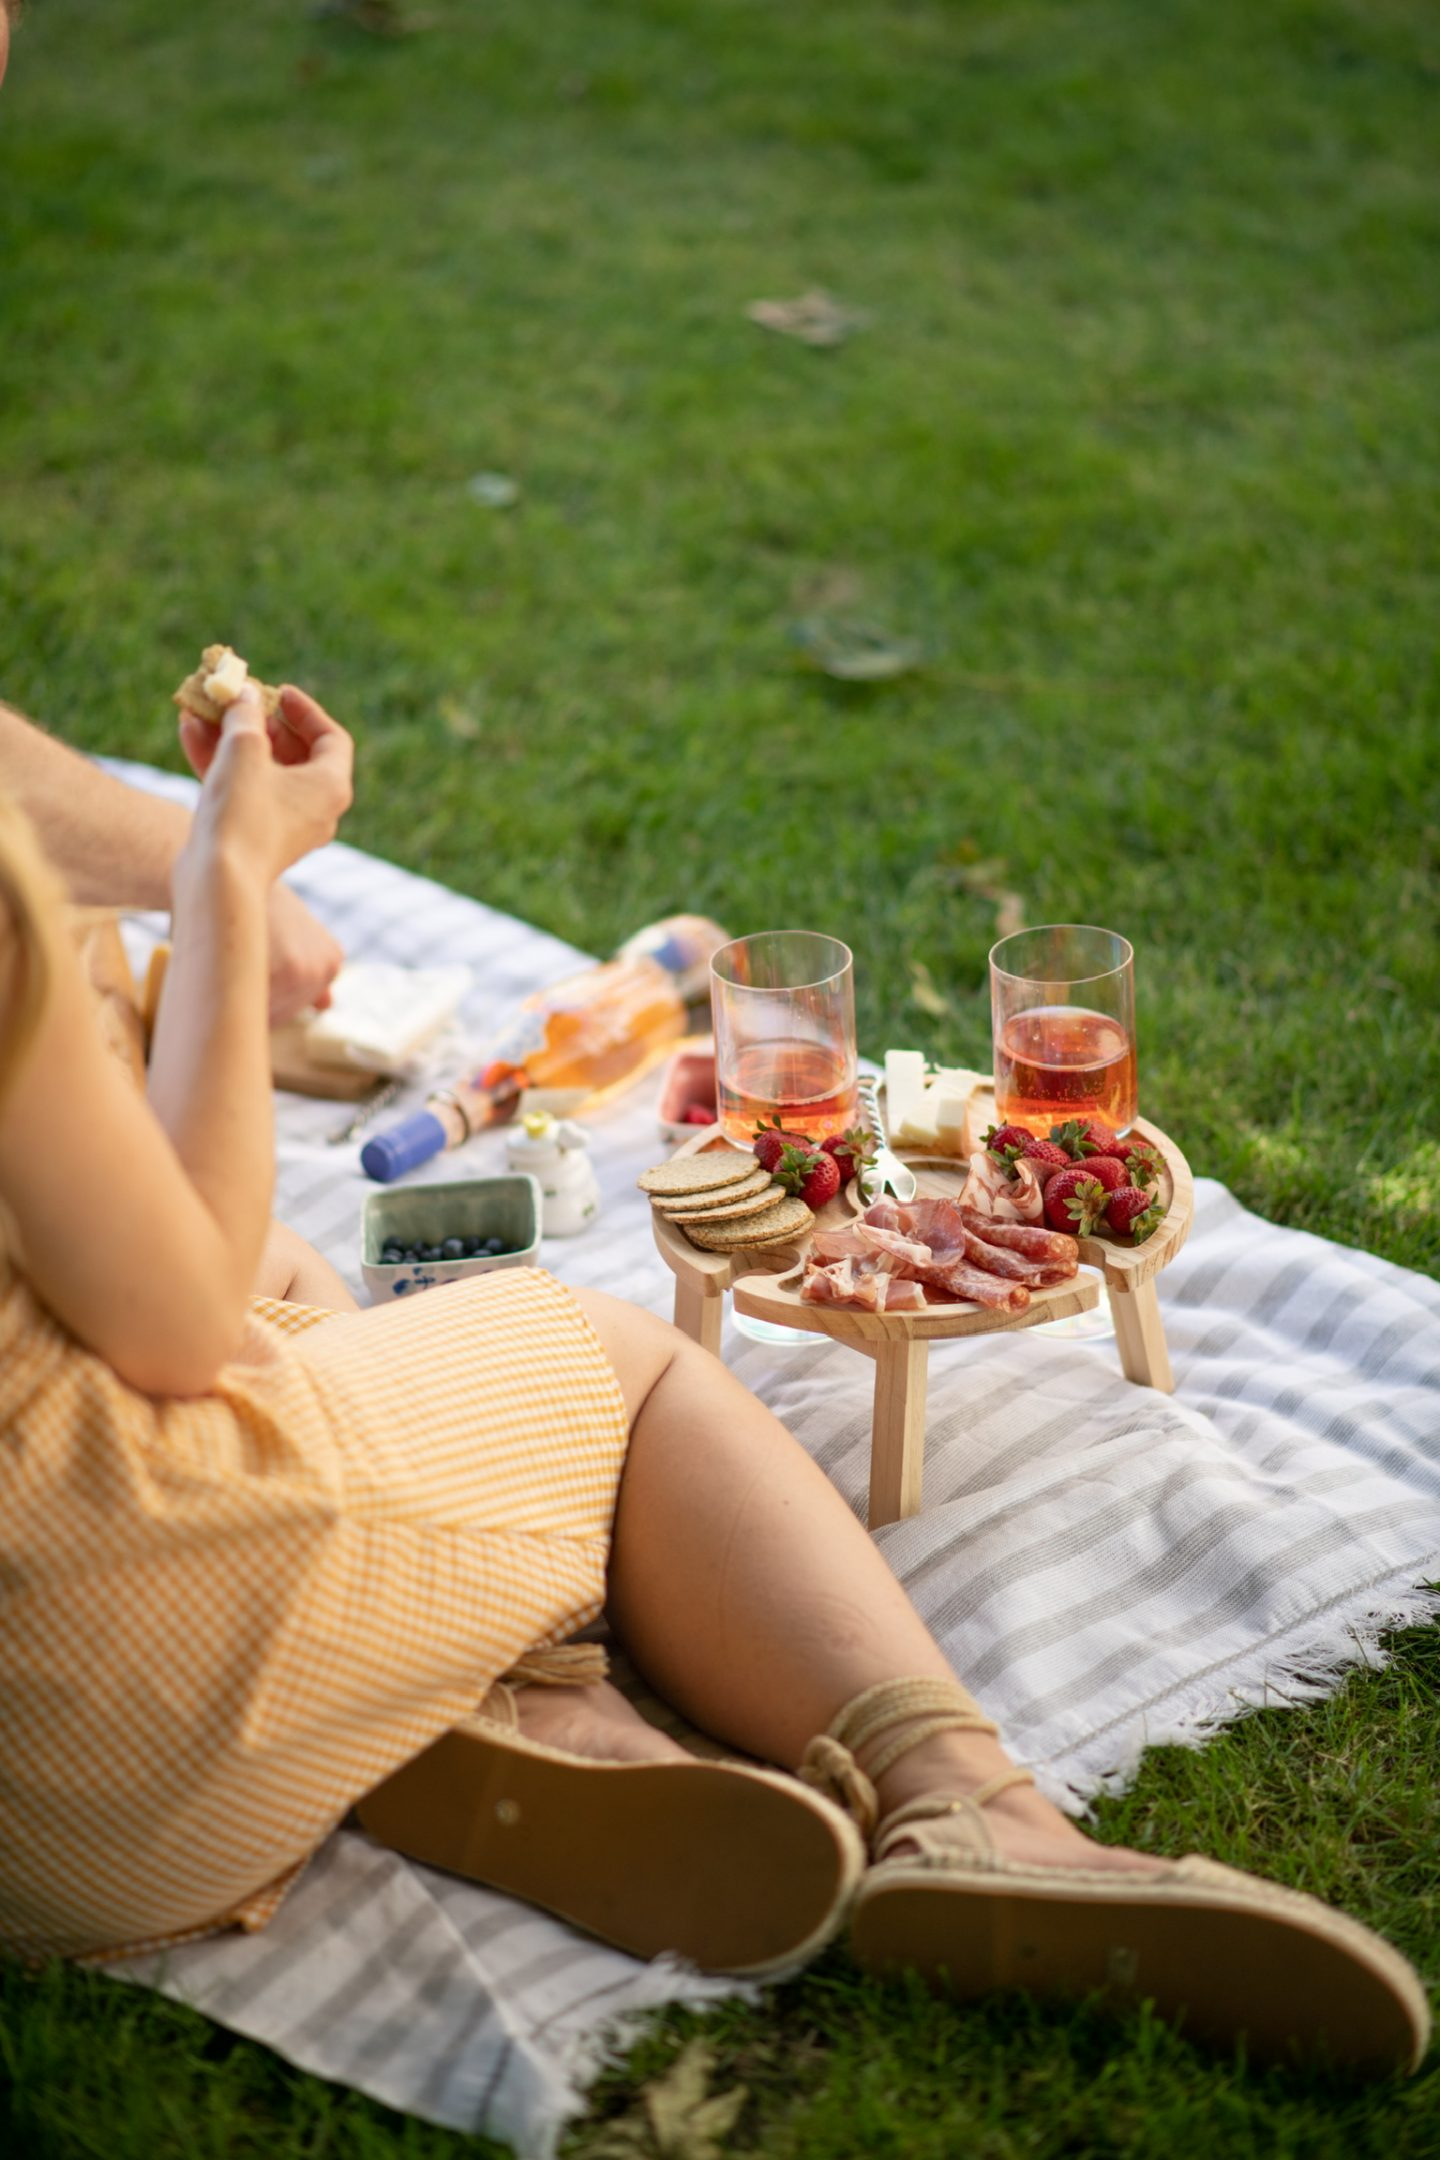 summer picnic set up including foldable picnic table